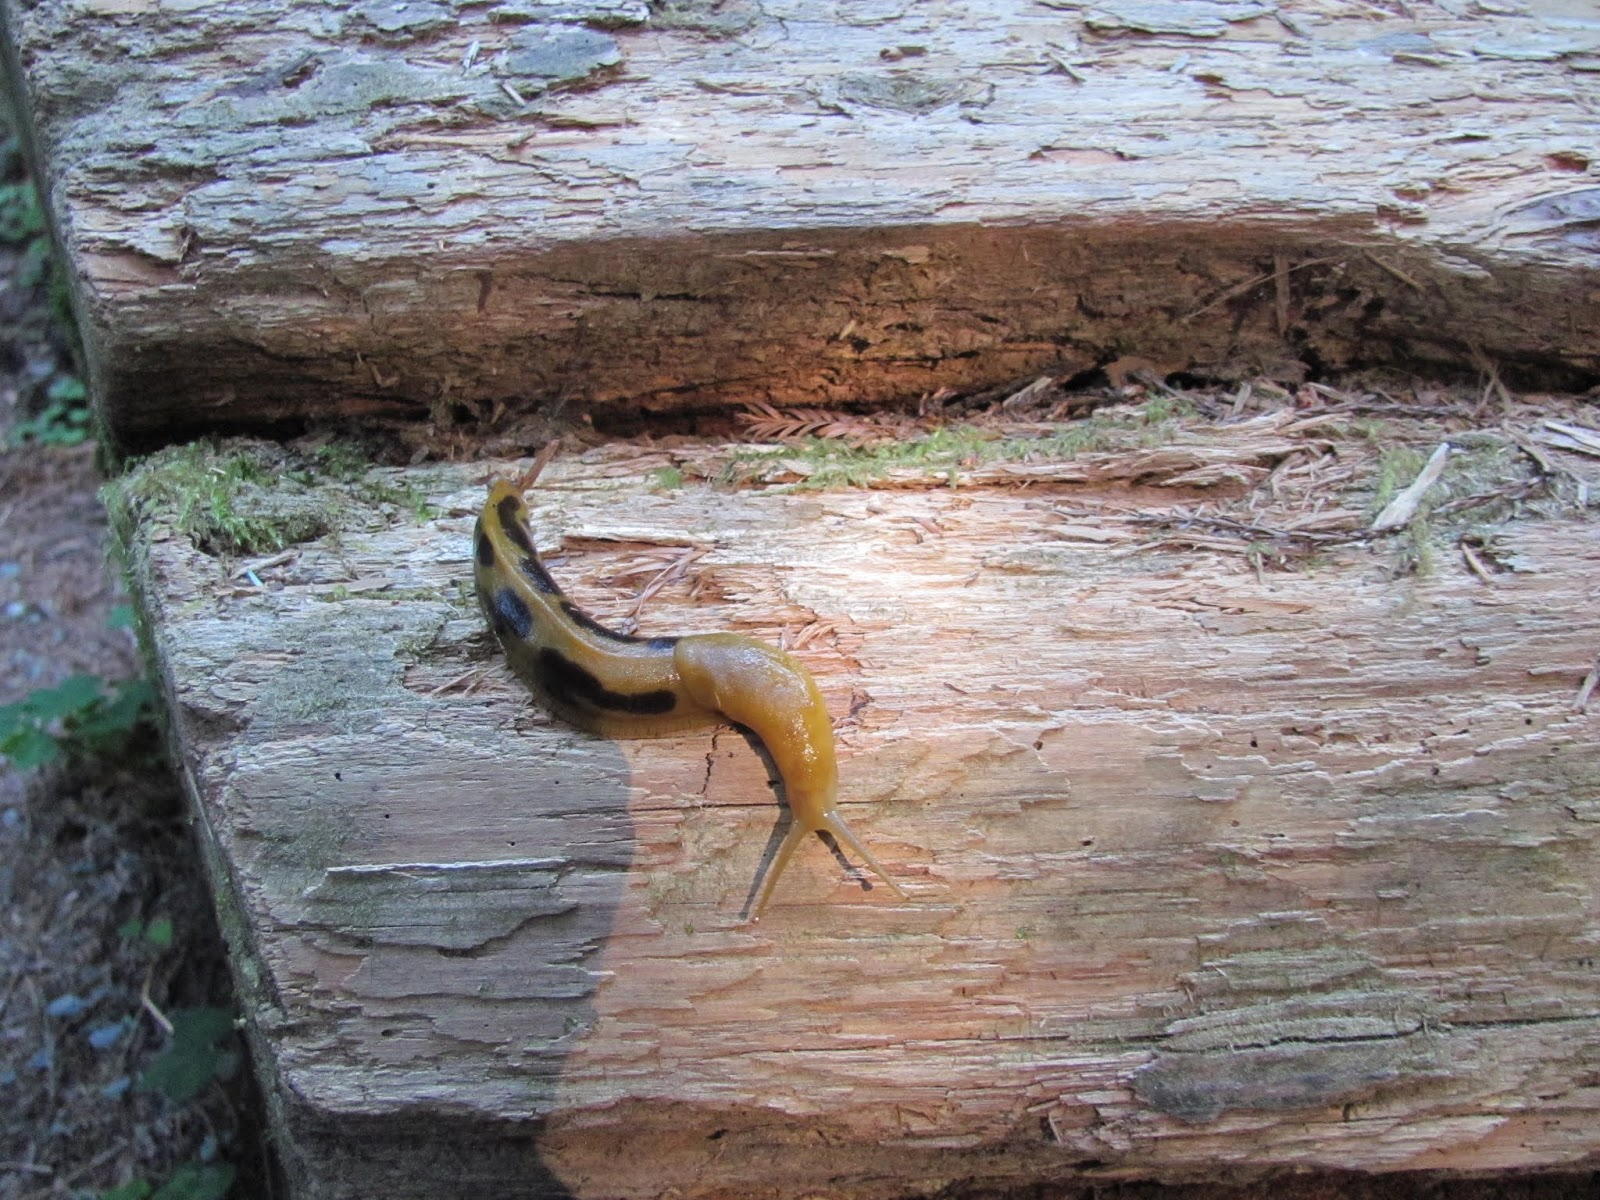 A banana slug makes its way across a fallen stump at Jedediah Smith State Park, California